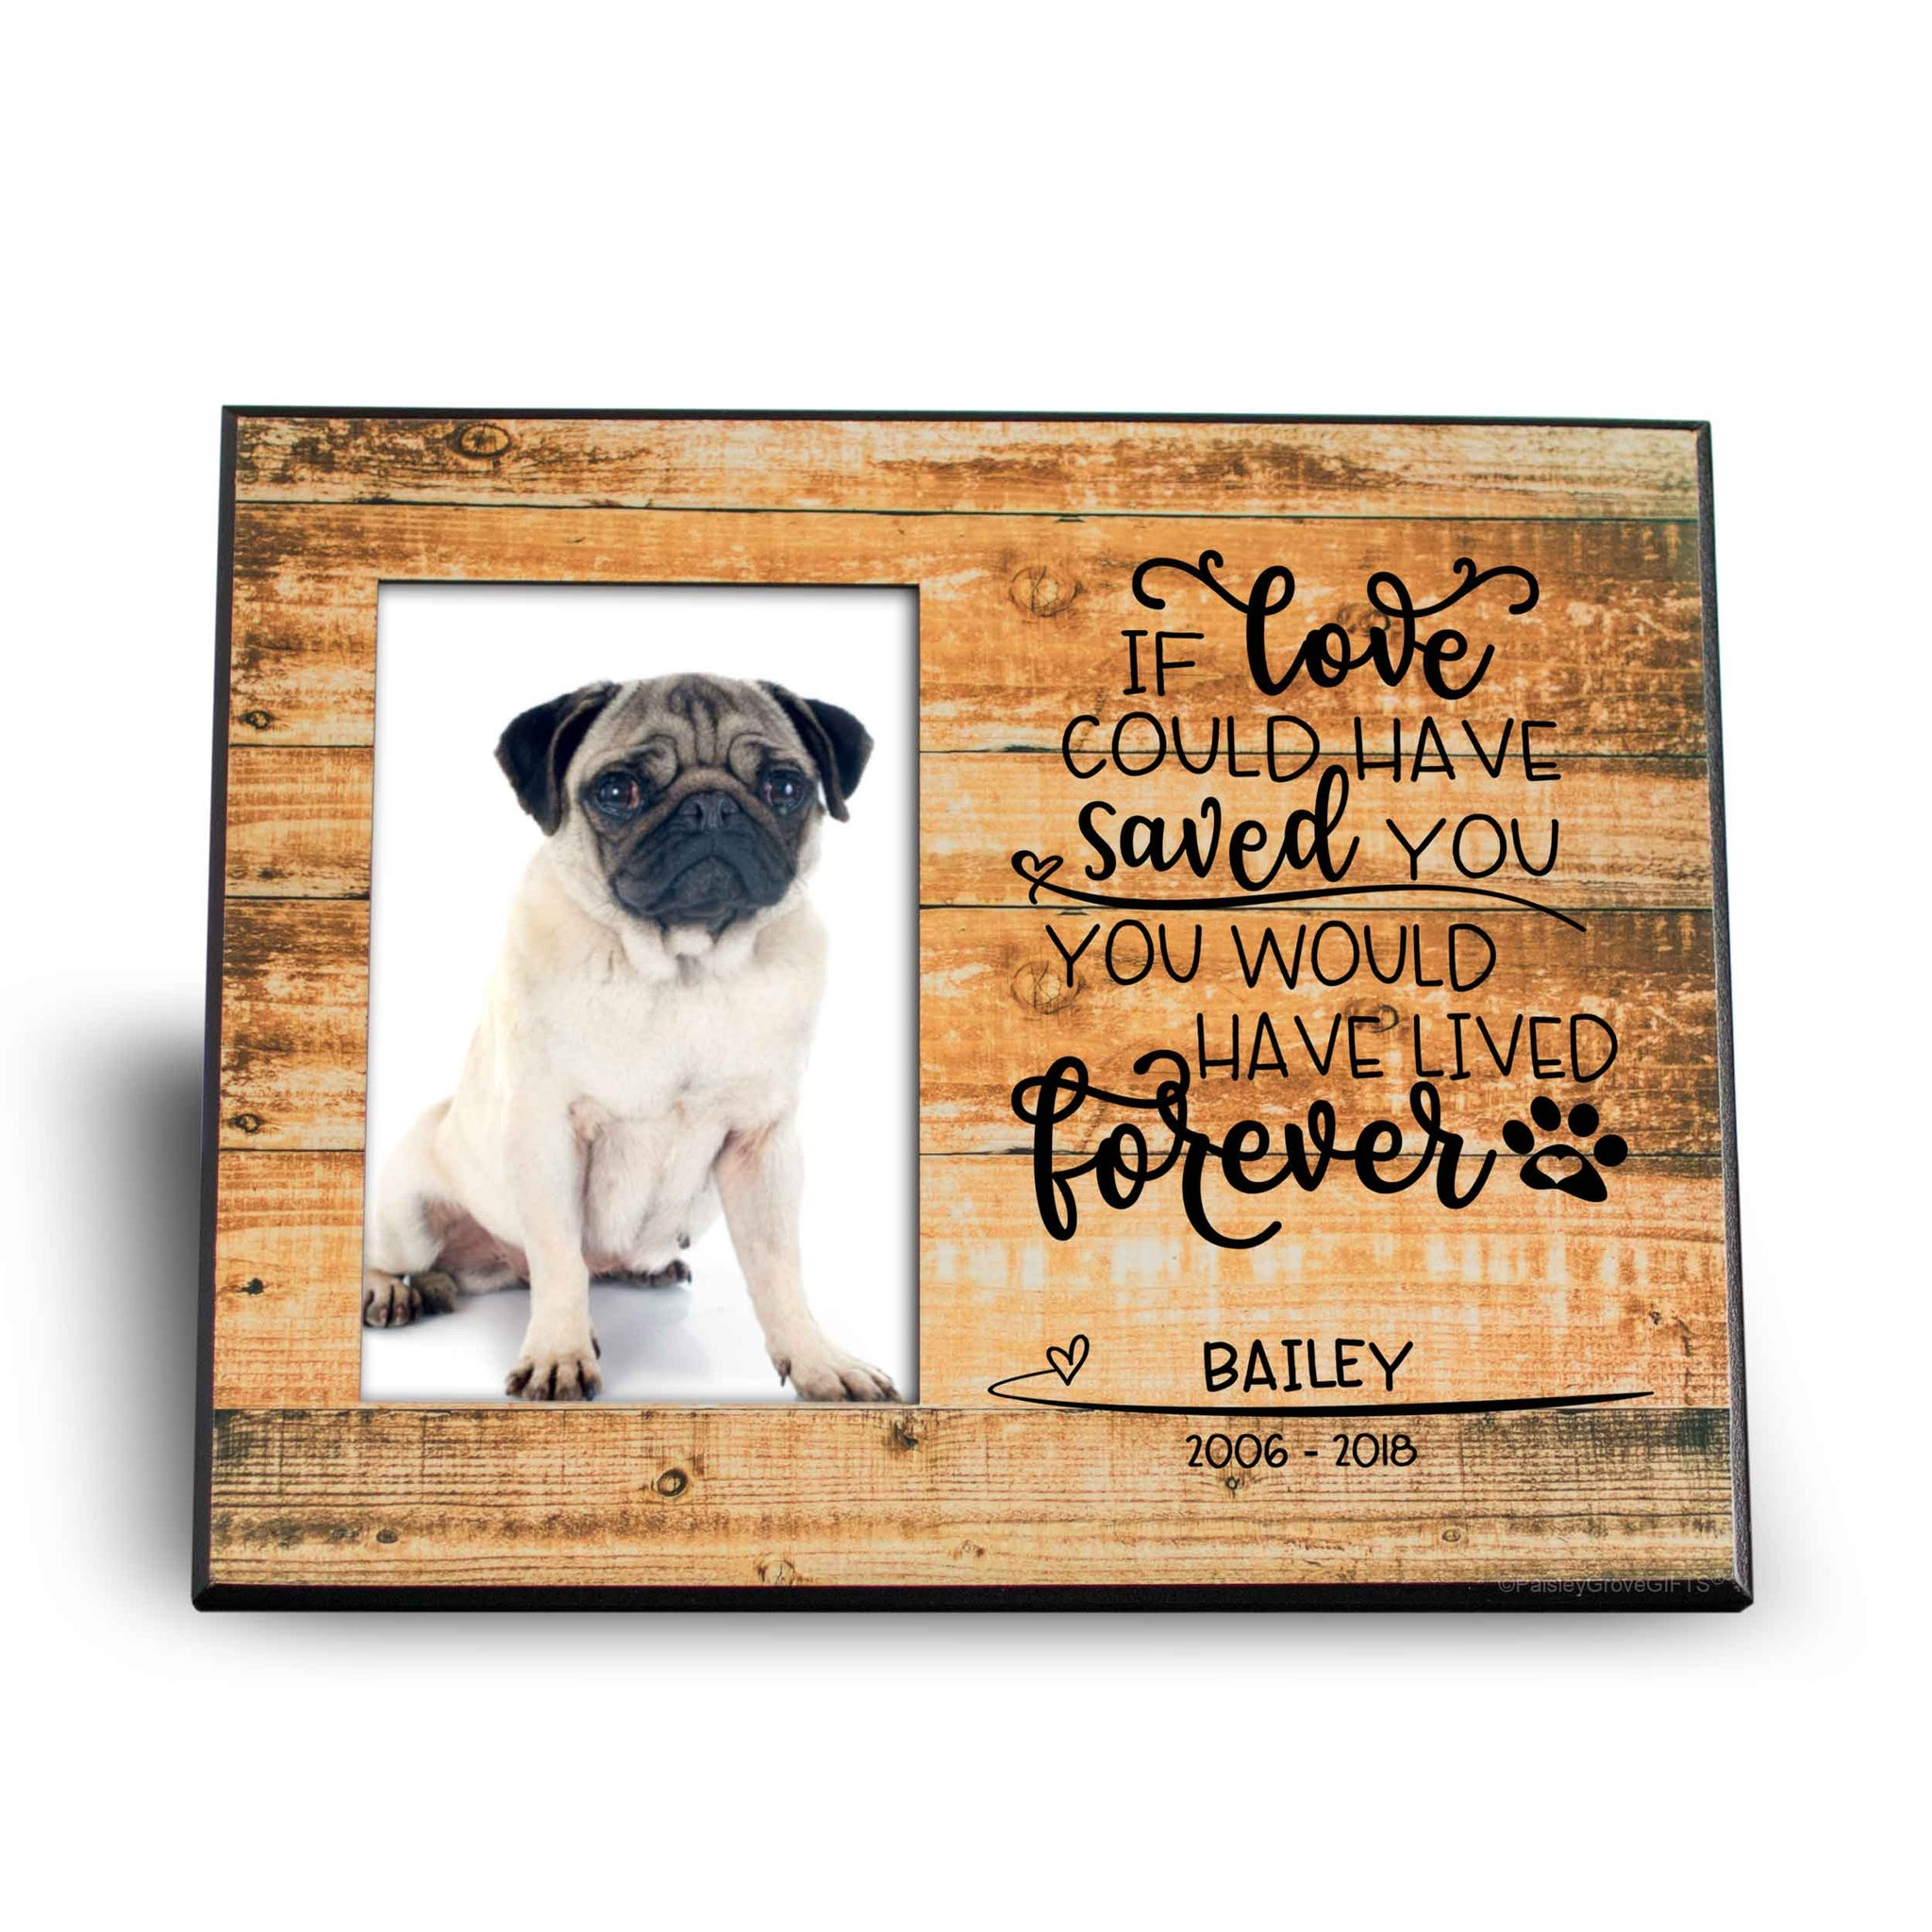 CopyrightPaisleyGroveGIFTS S280a1 Pet Memorial Keepsake Gift for Pet Loss Dog Cat Frame with Pet Photo